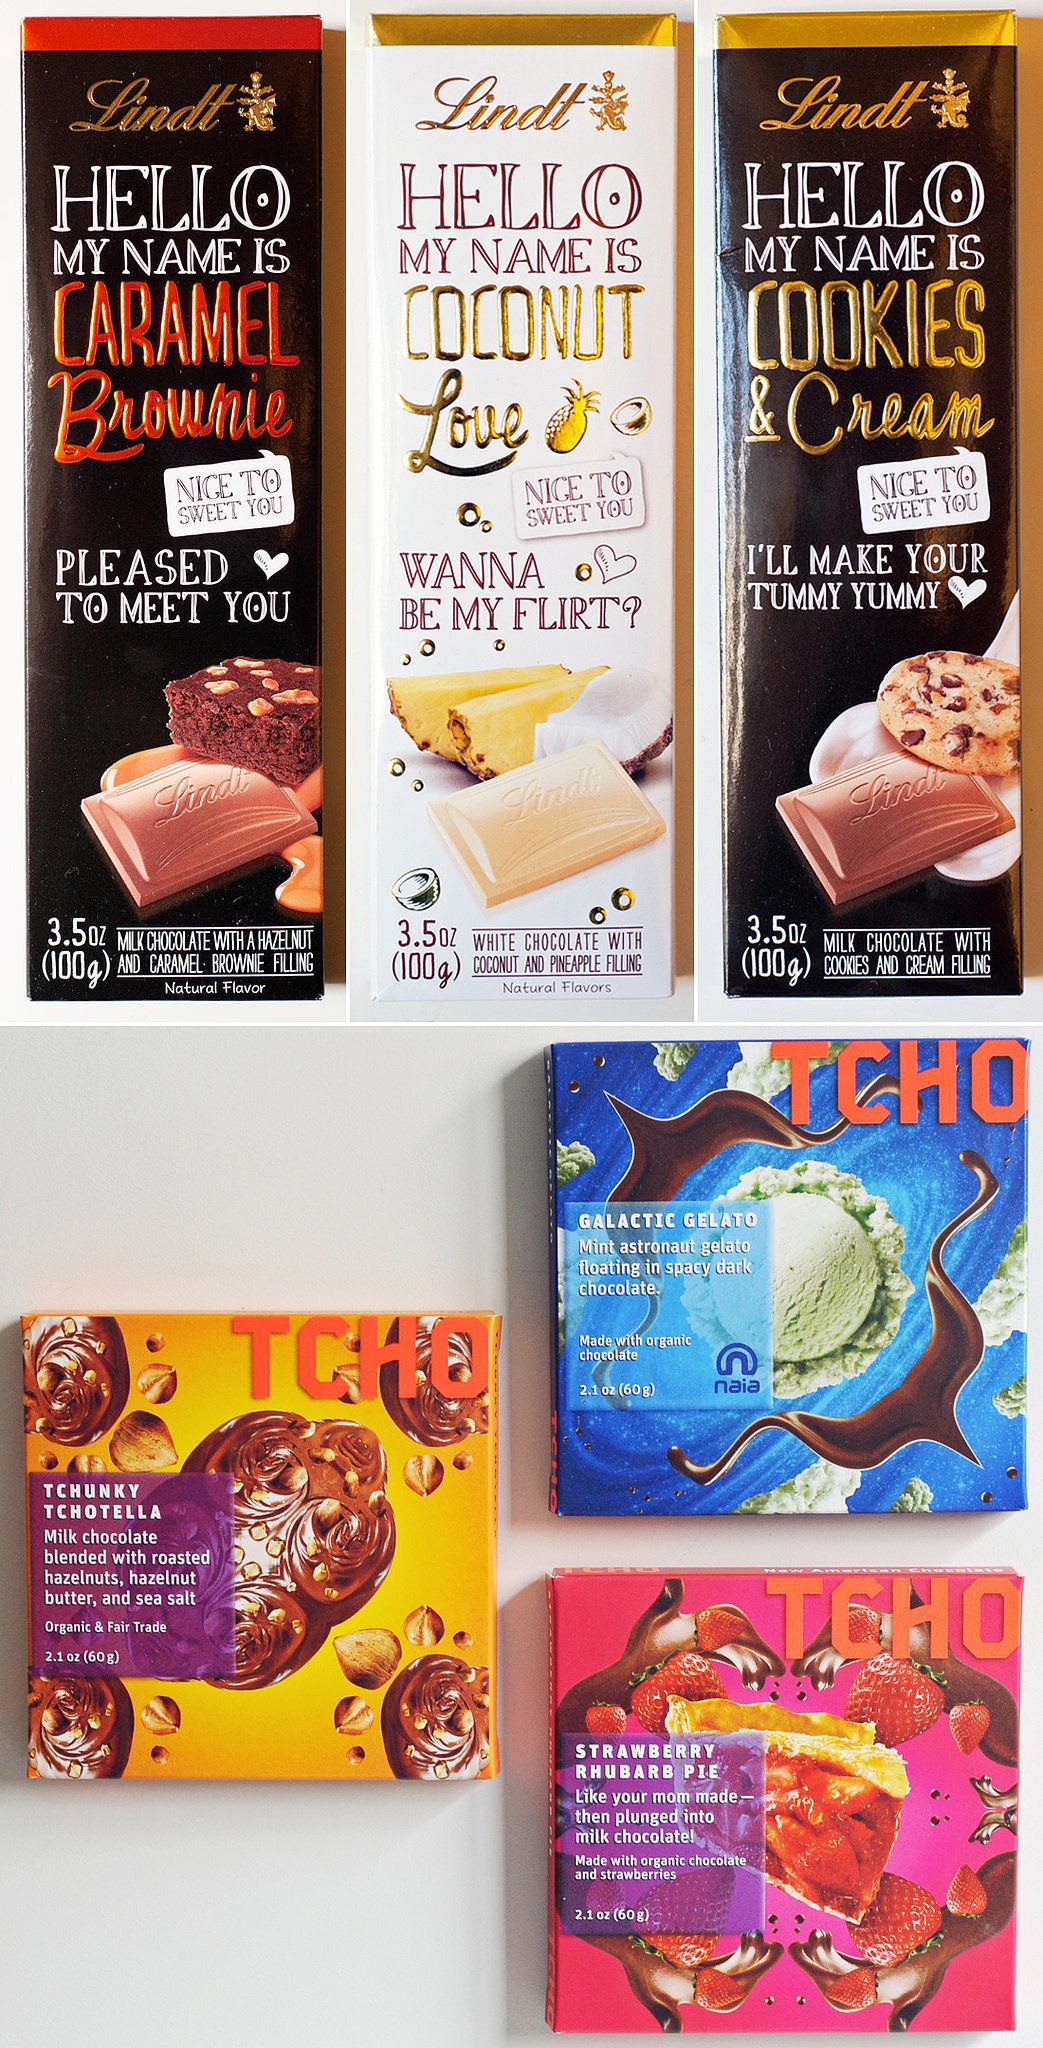 How fun are these chocolate bar packagings?